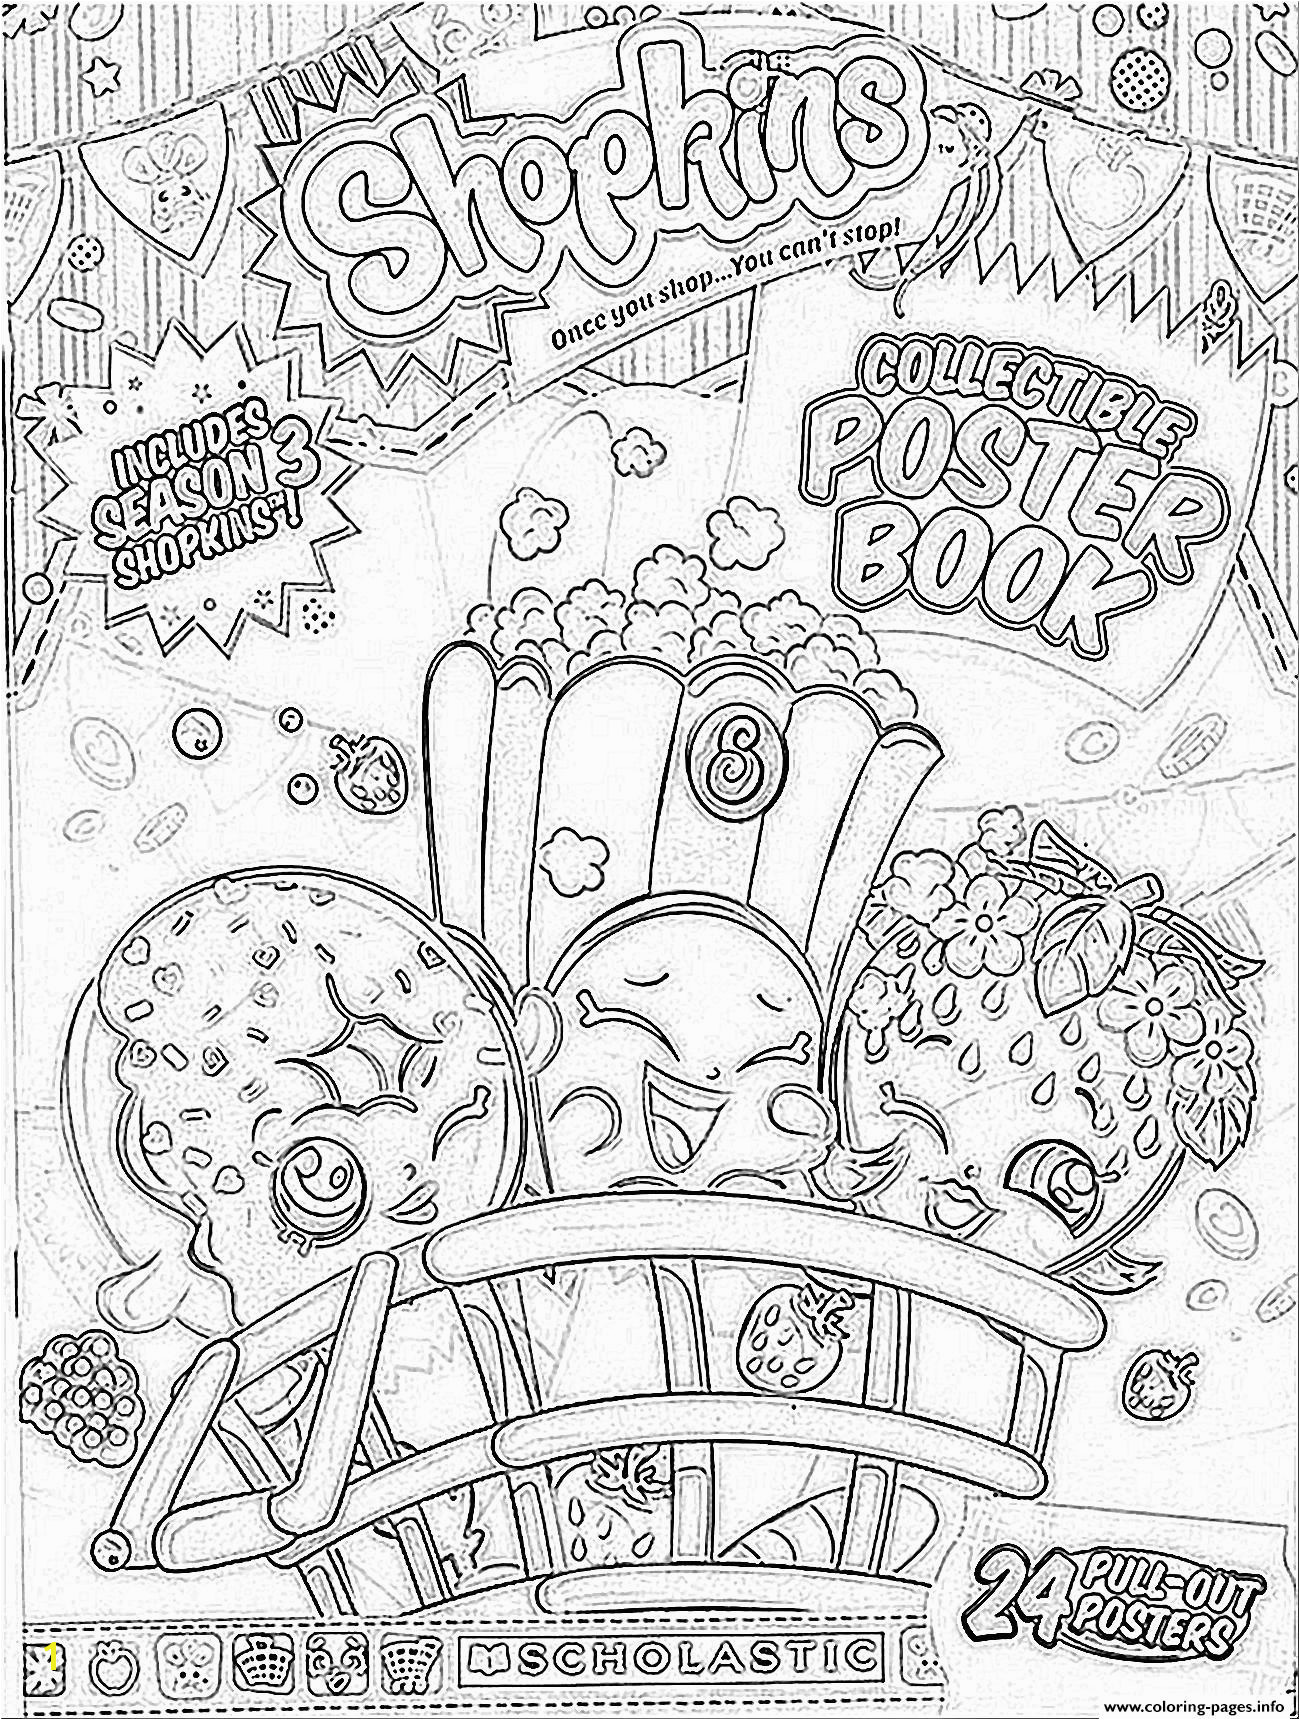 Coloring Pages Fall Printable Awesome Print Shopkins Season 3 Book Coloring Pages Kids Best Coloring